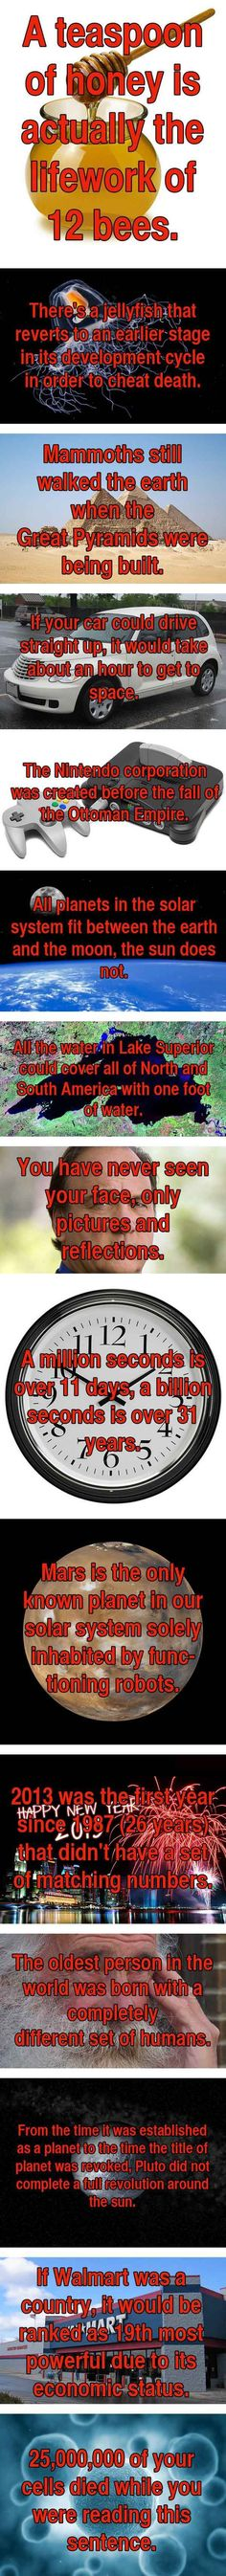 15 One-Sentence Facts